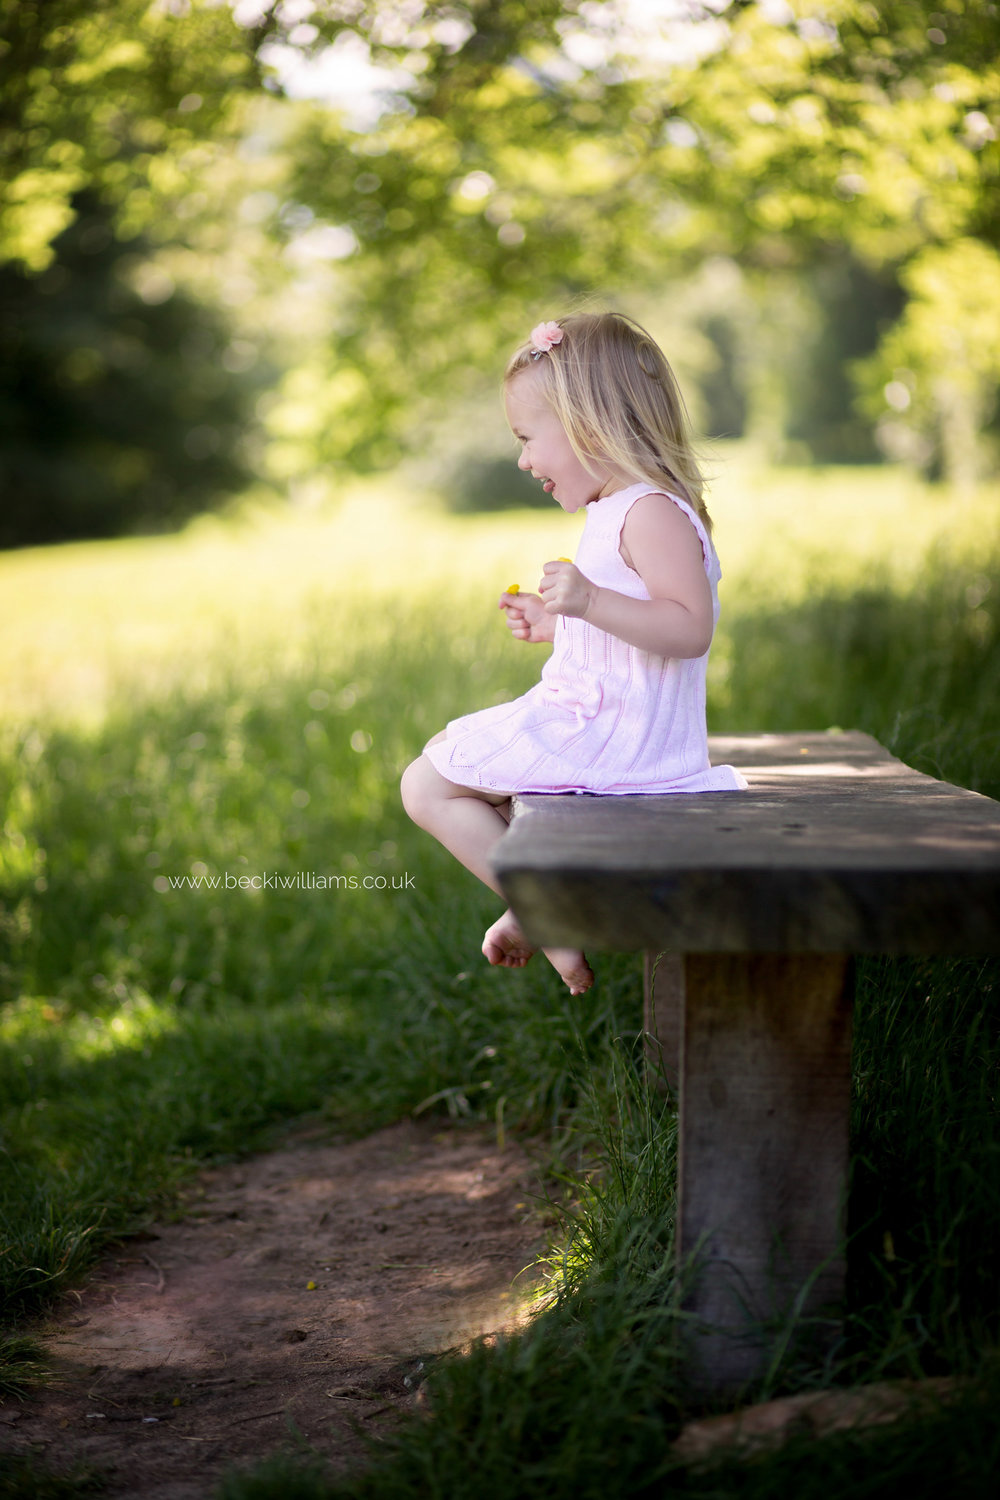 little girl sitting, smiling on a bench in gadebridge park, hemel hempstead